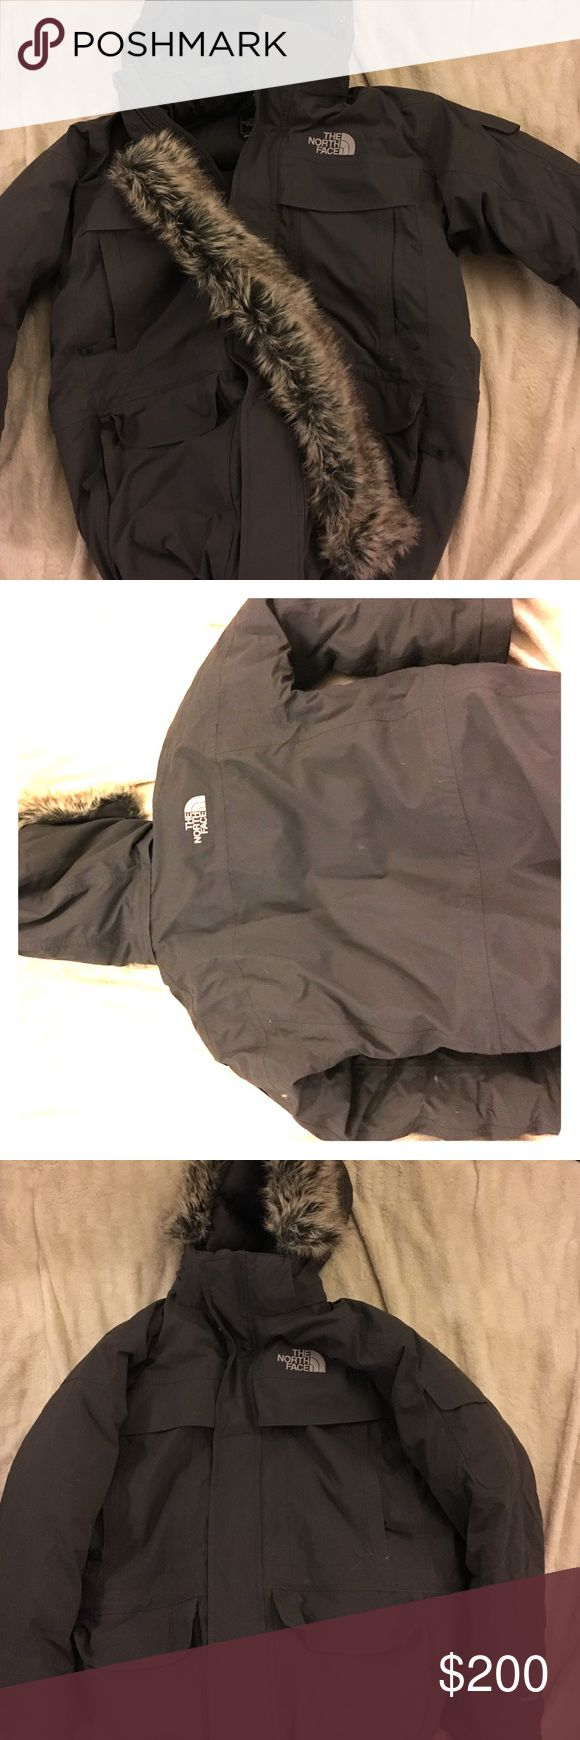 Men's North Face McMurdo Parka Men's North Face McMurdo Parka size large, removable fur on hood. Worn 1-2 times. Great condition. The North Face Jackets & Coats Ski & Snowboard